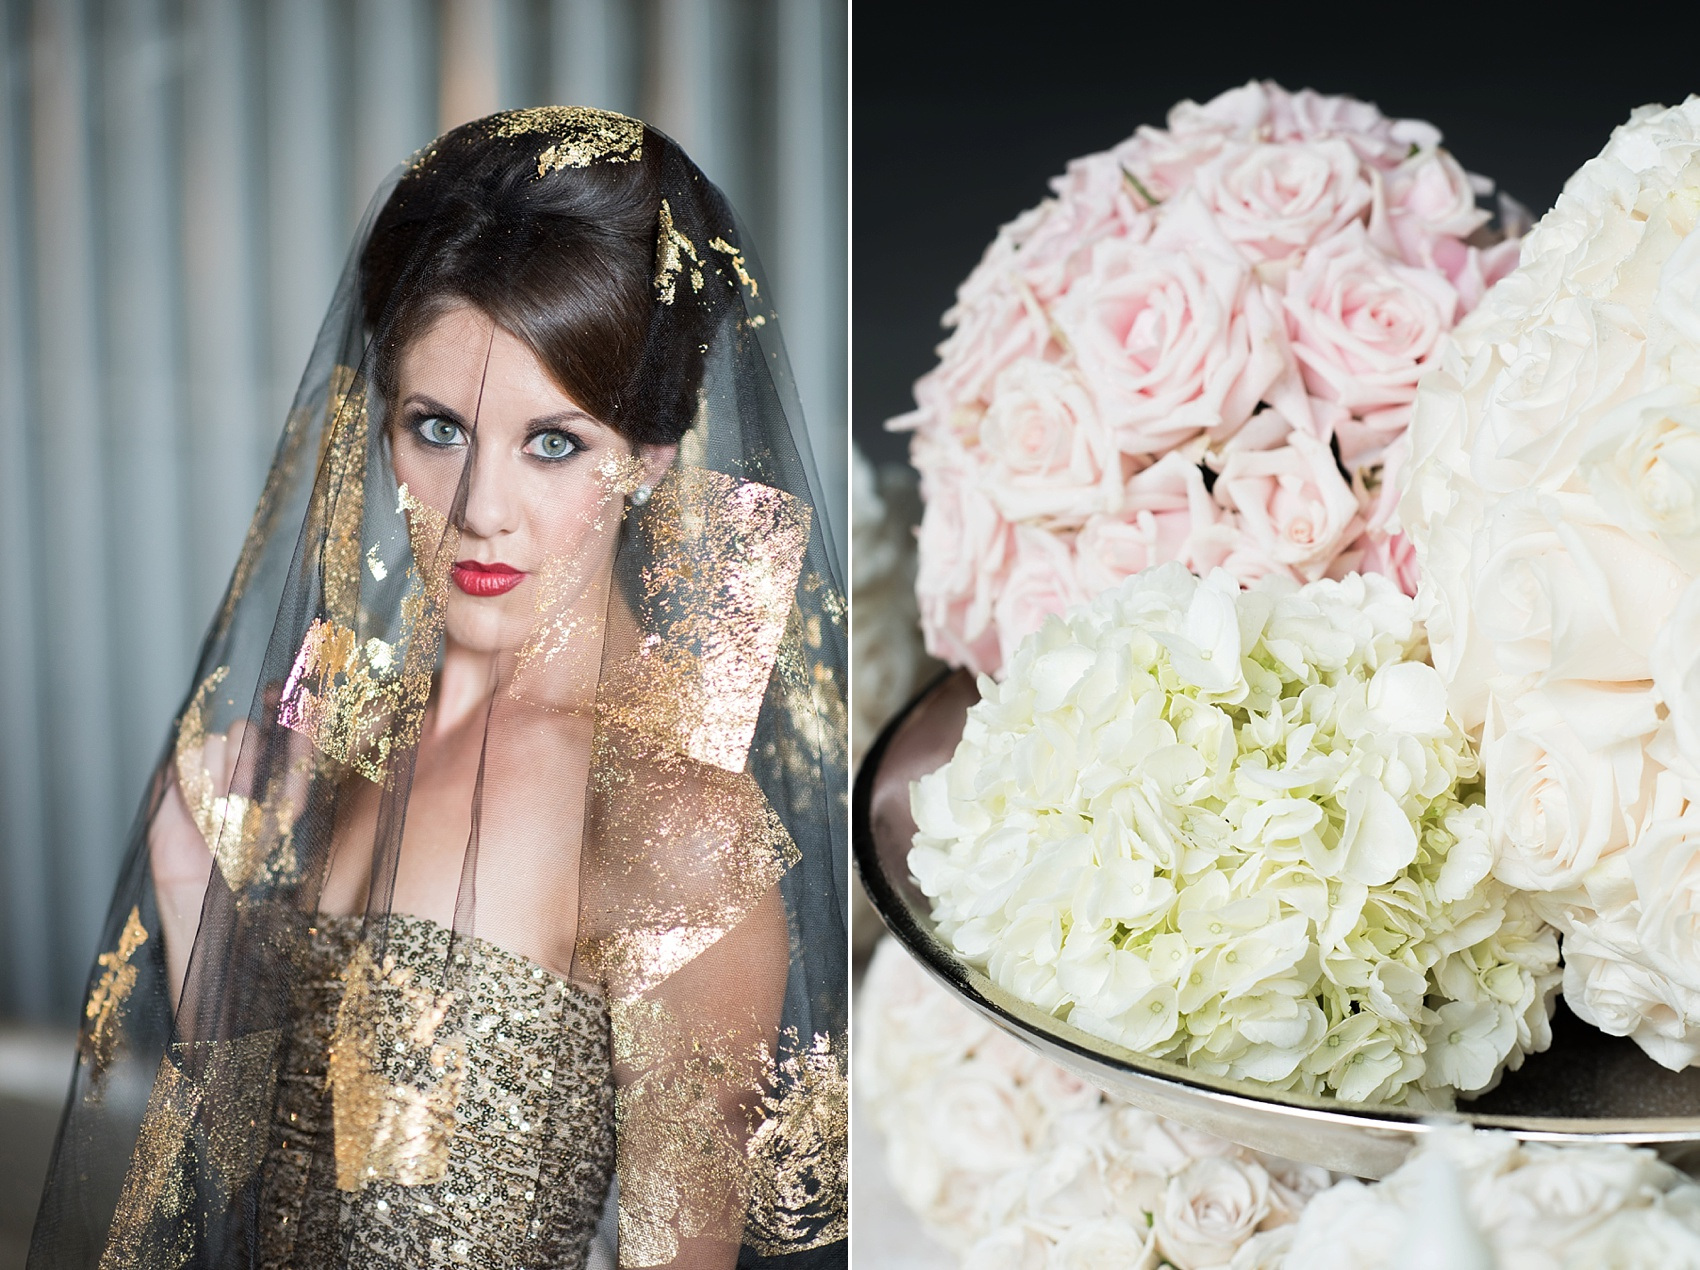 Destination wedding photographer Mikkel Paige captures a glamorous industrial bridal session in Hawaii with Burnett's Boards and Moana Events. Gold sequin gown from Rent the Runway with the bride in a black veil and gold and white bouquet.